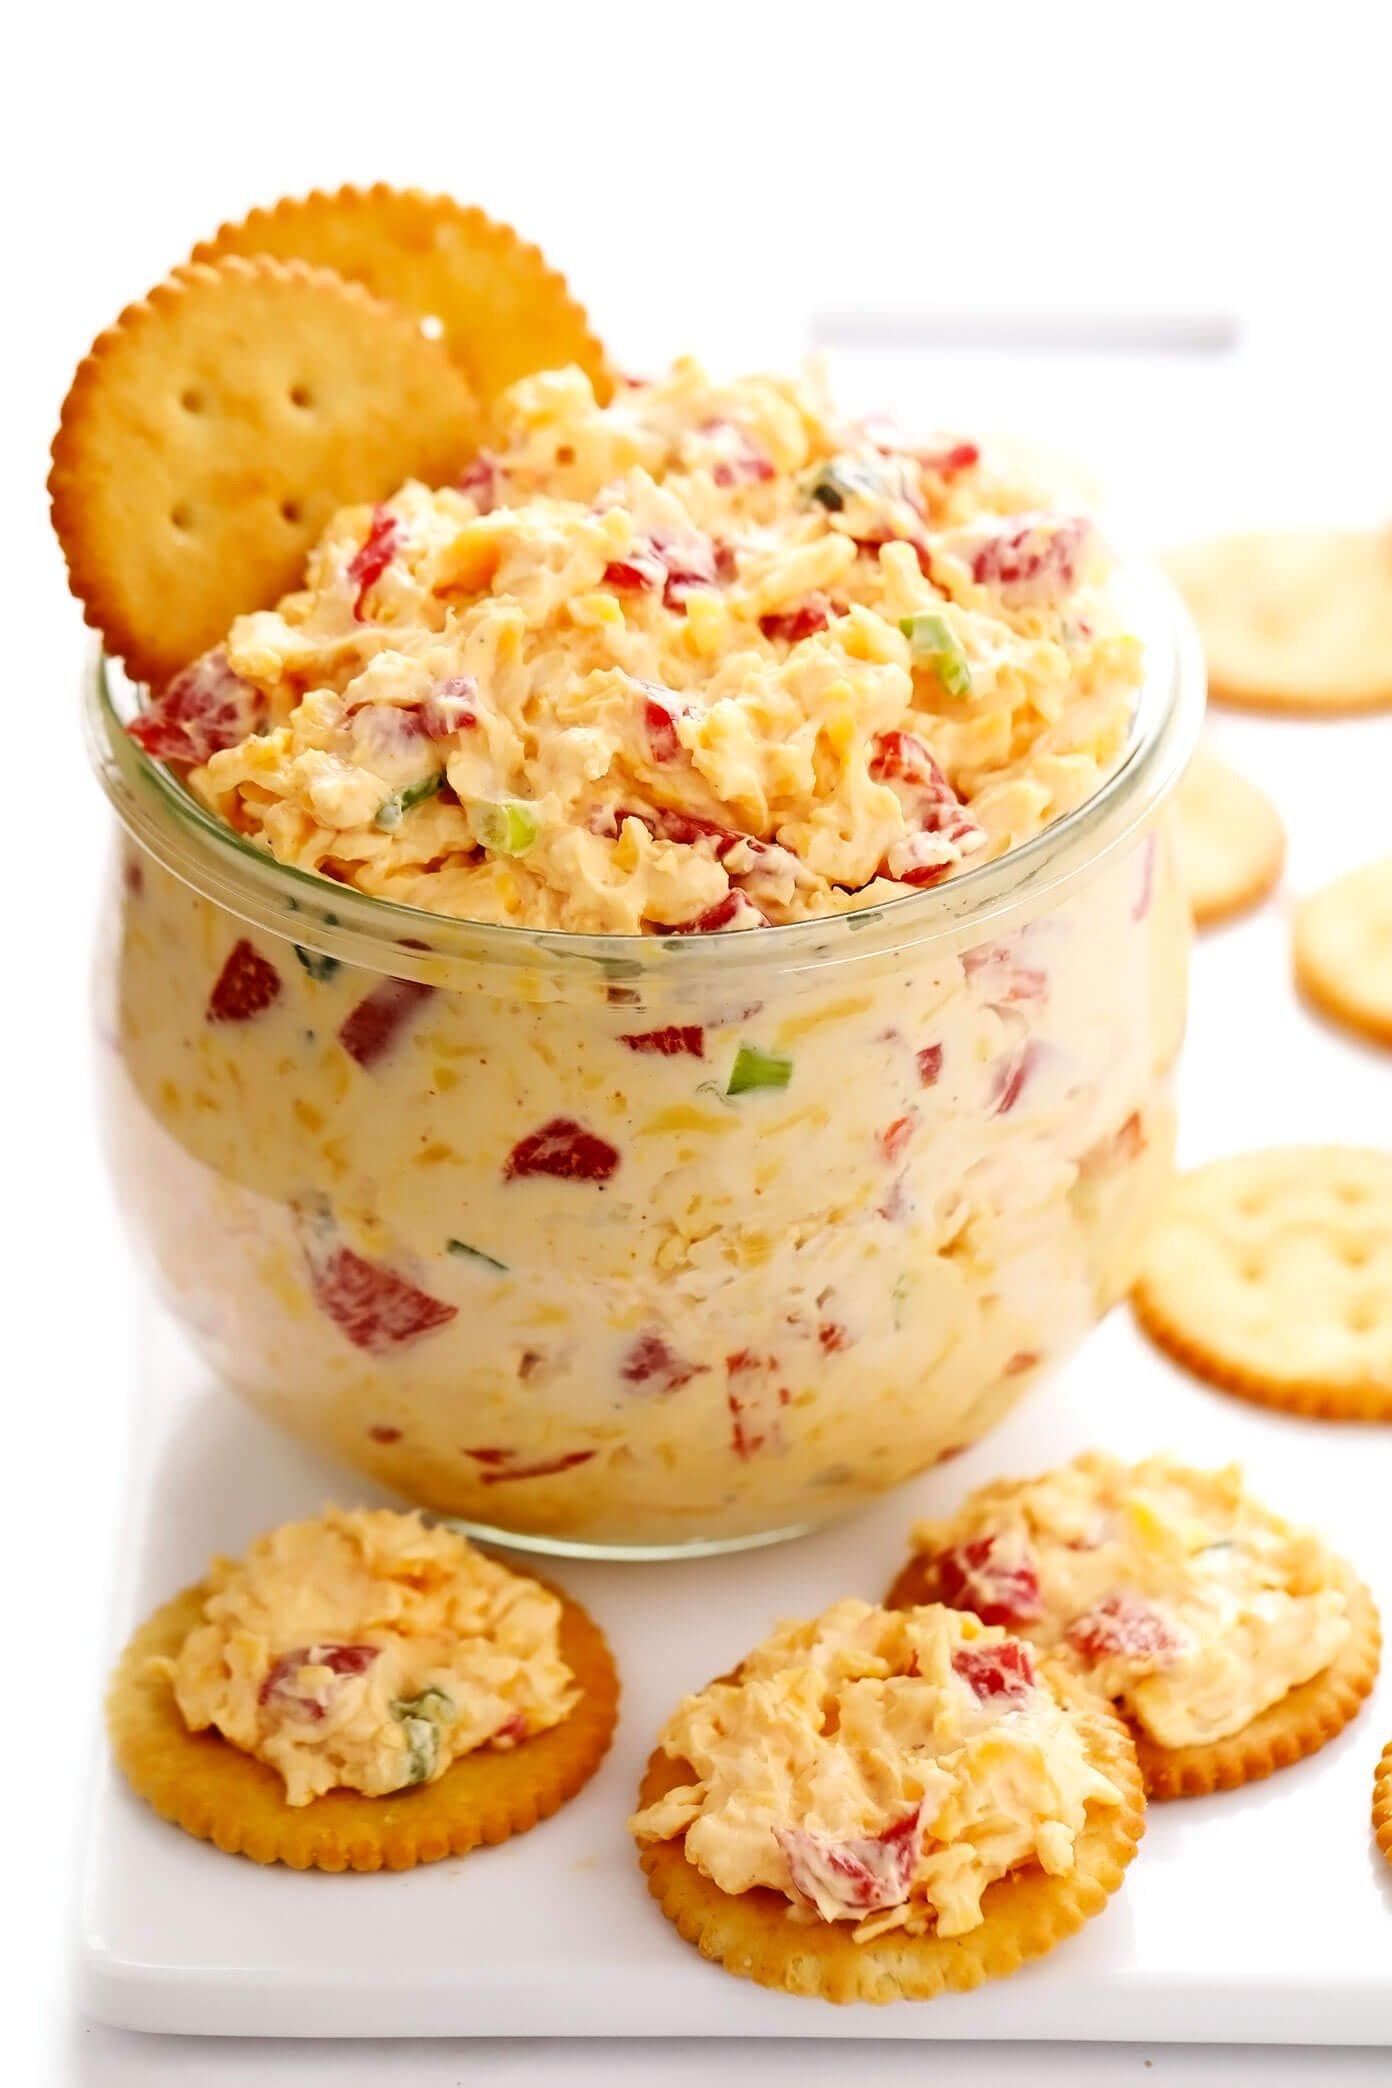 Homemade Pimento Cheese with Ritz Crackers